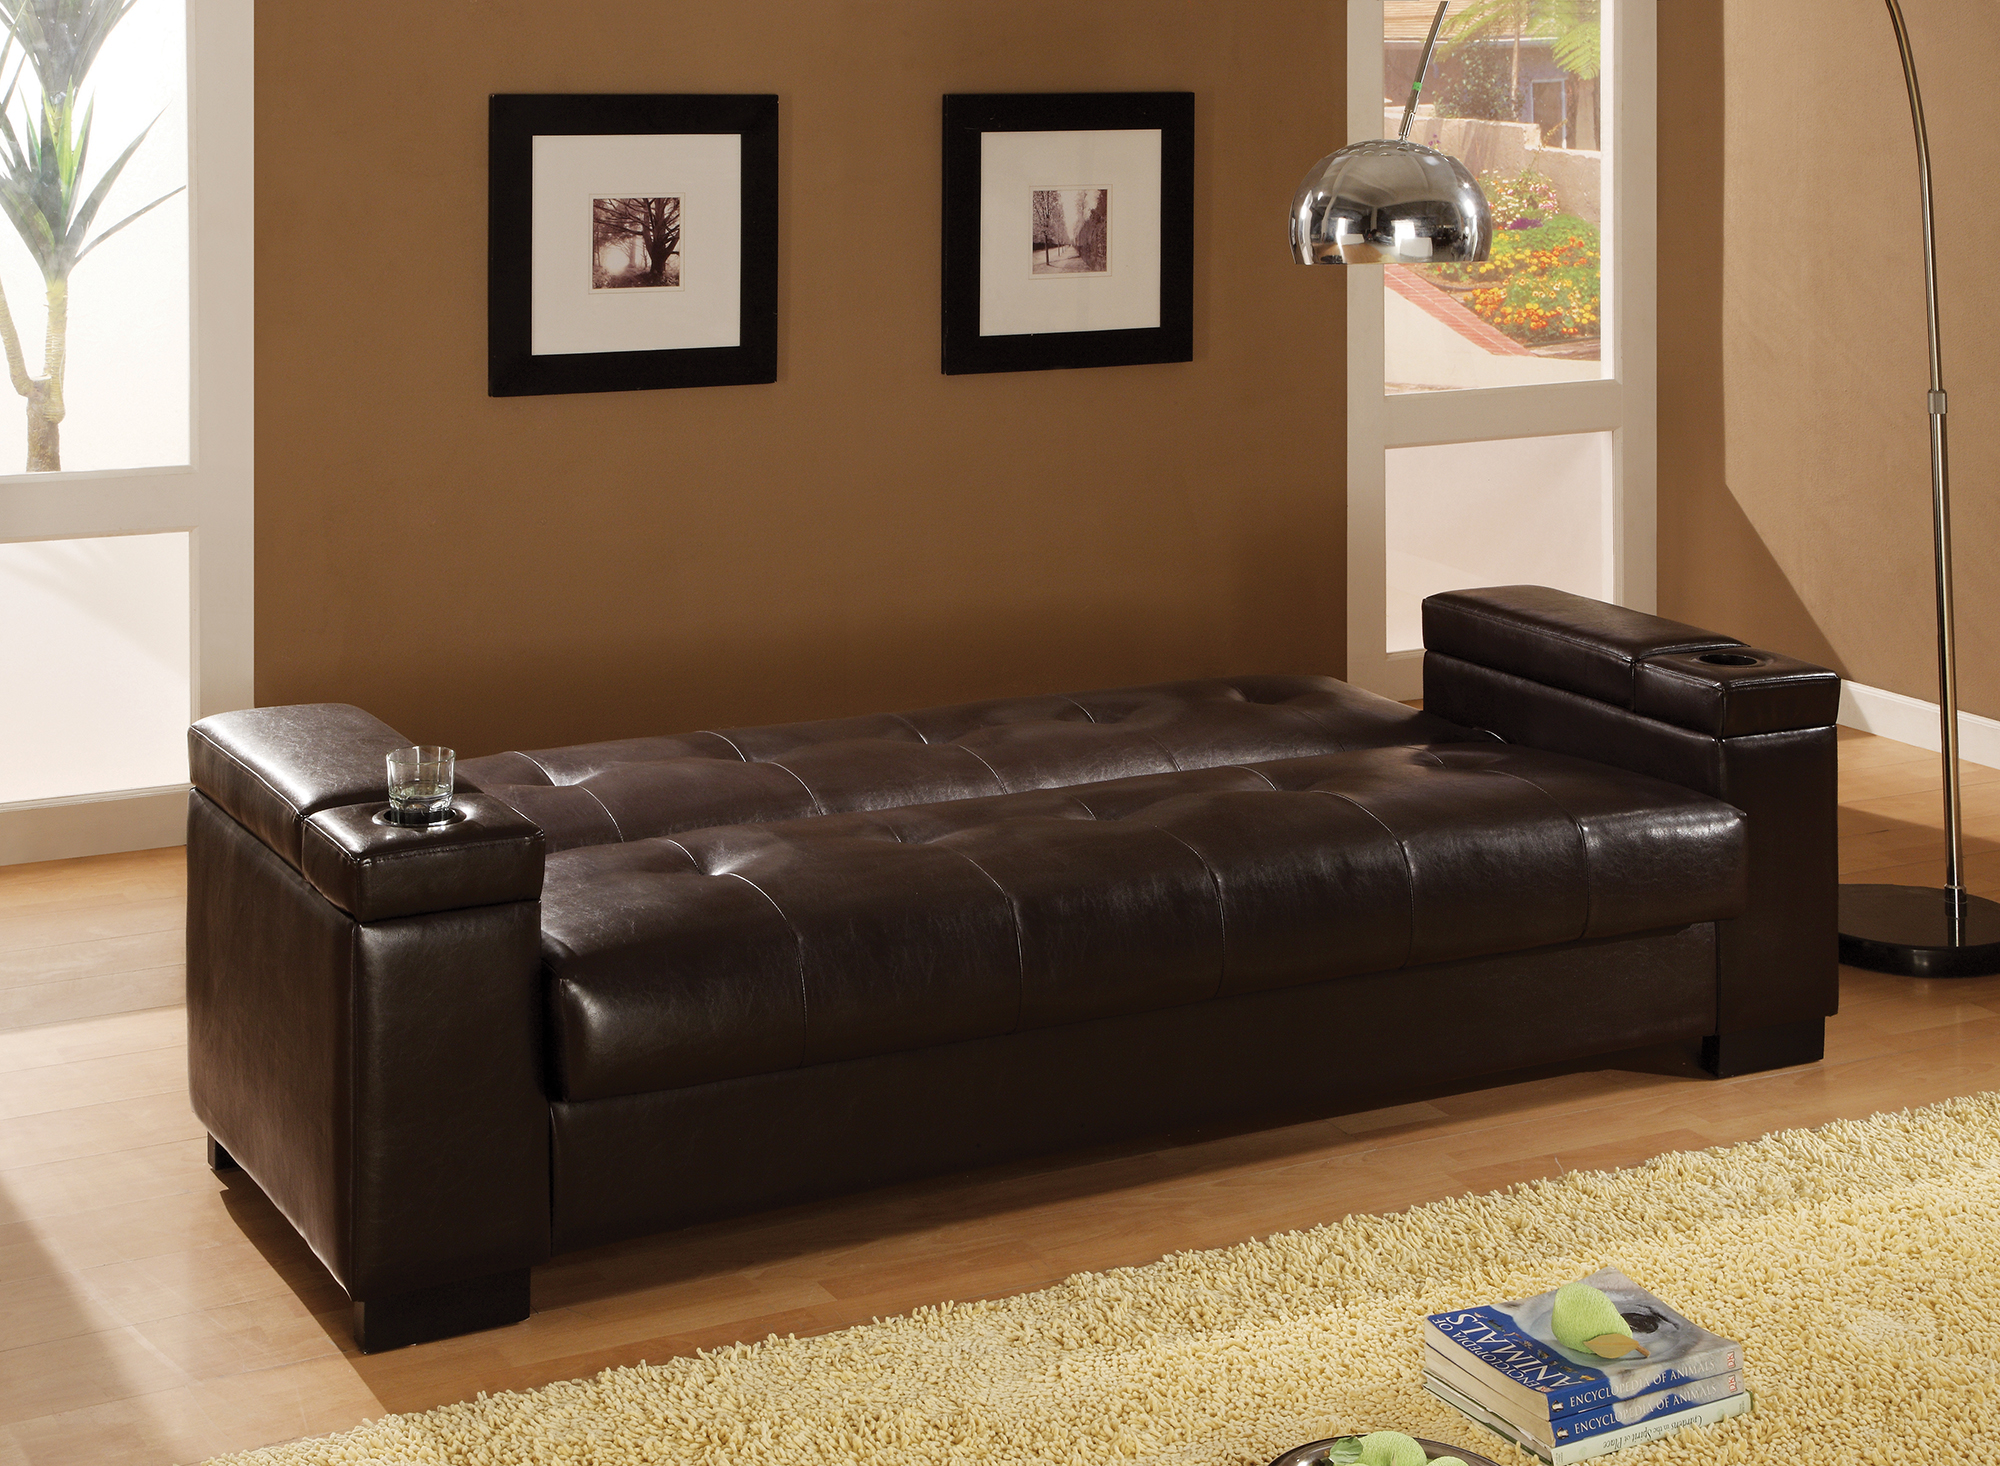 Coaster Transitional Faux Leather Sofa Bed inDark Brown Finish ...